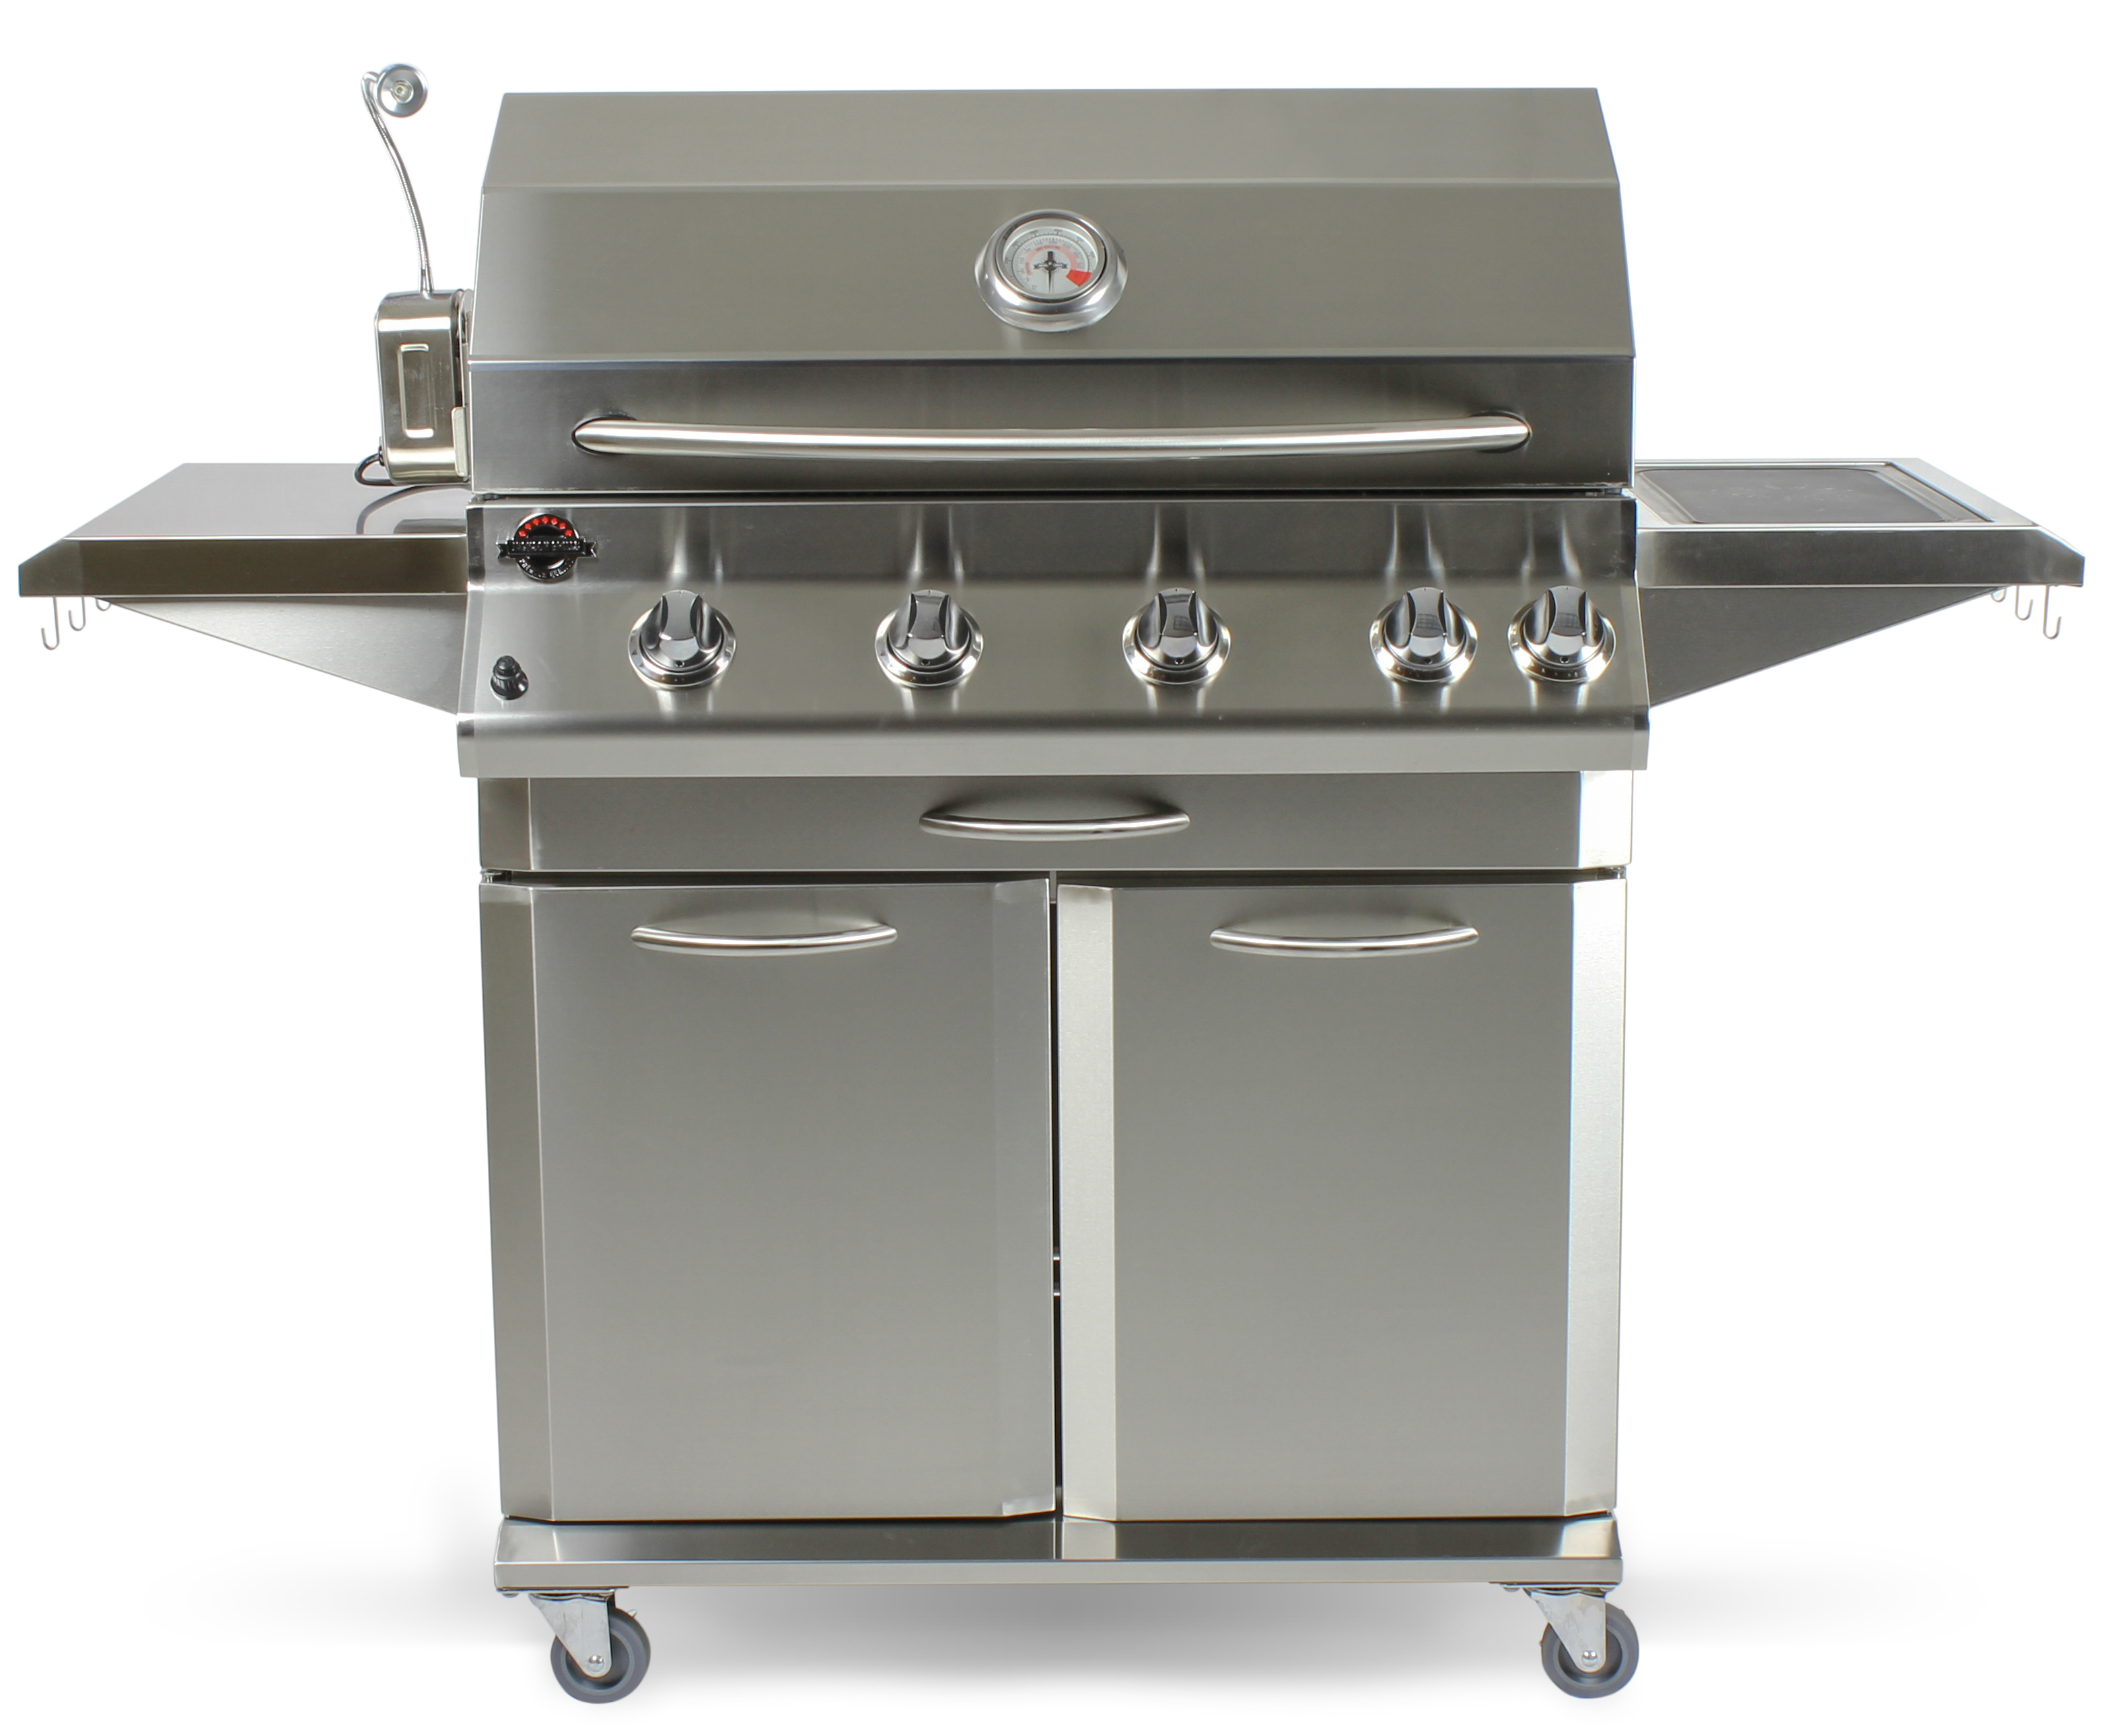 Lux 700 Grill